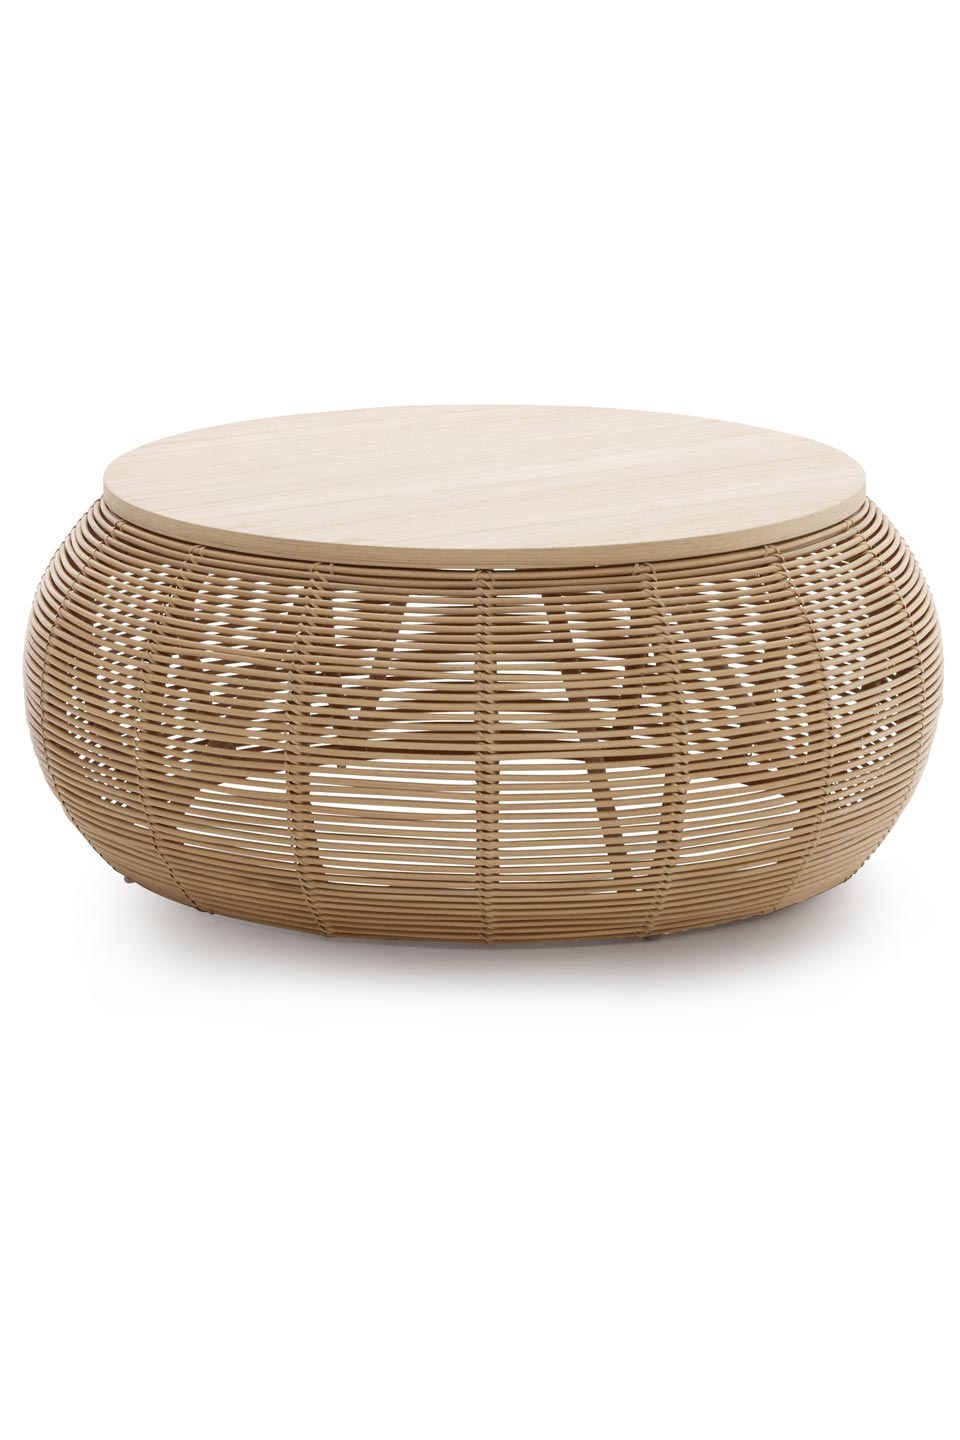 rattan and wood coffee table matching baskets and coffee tables